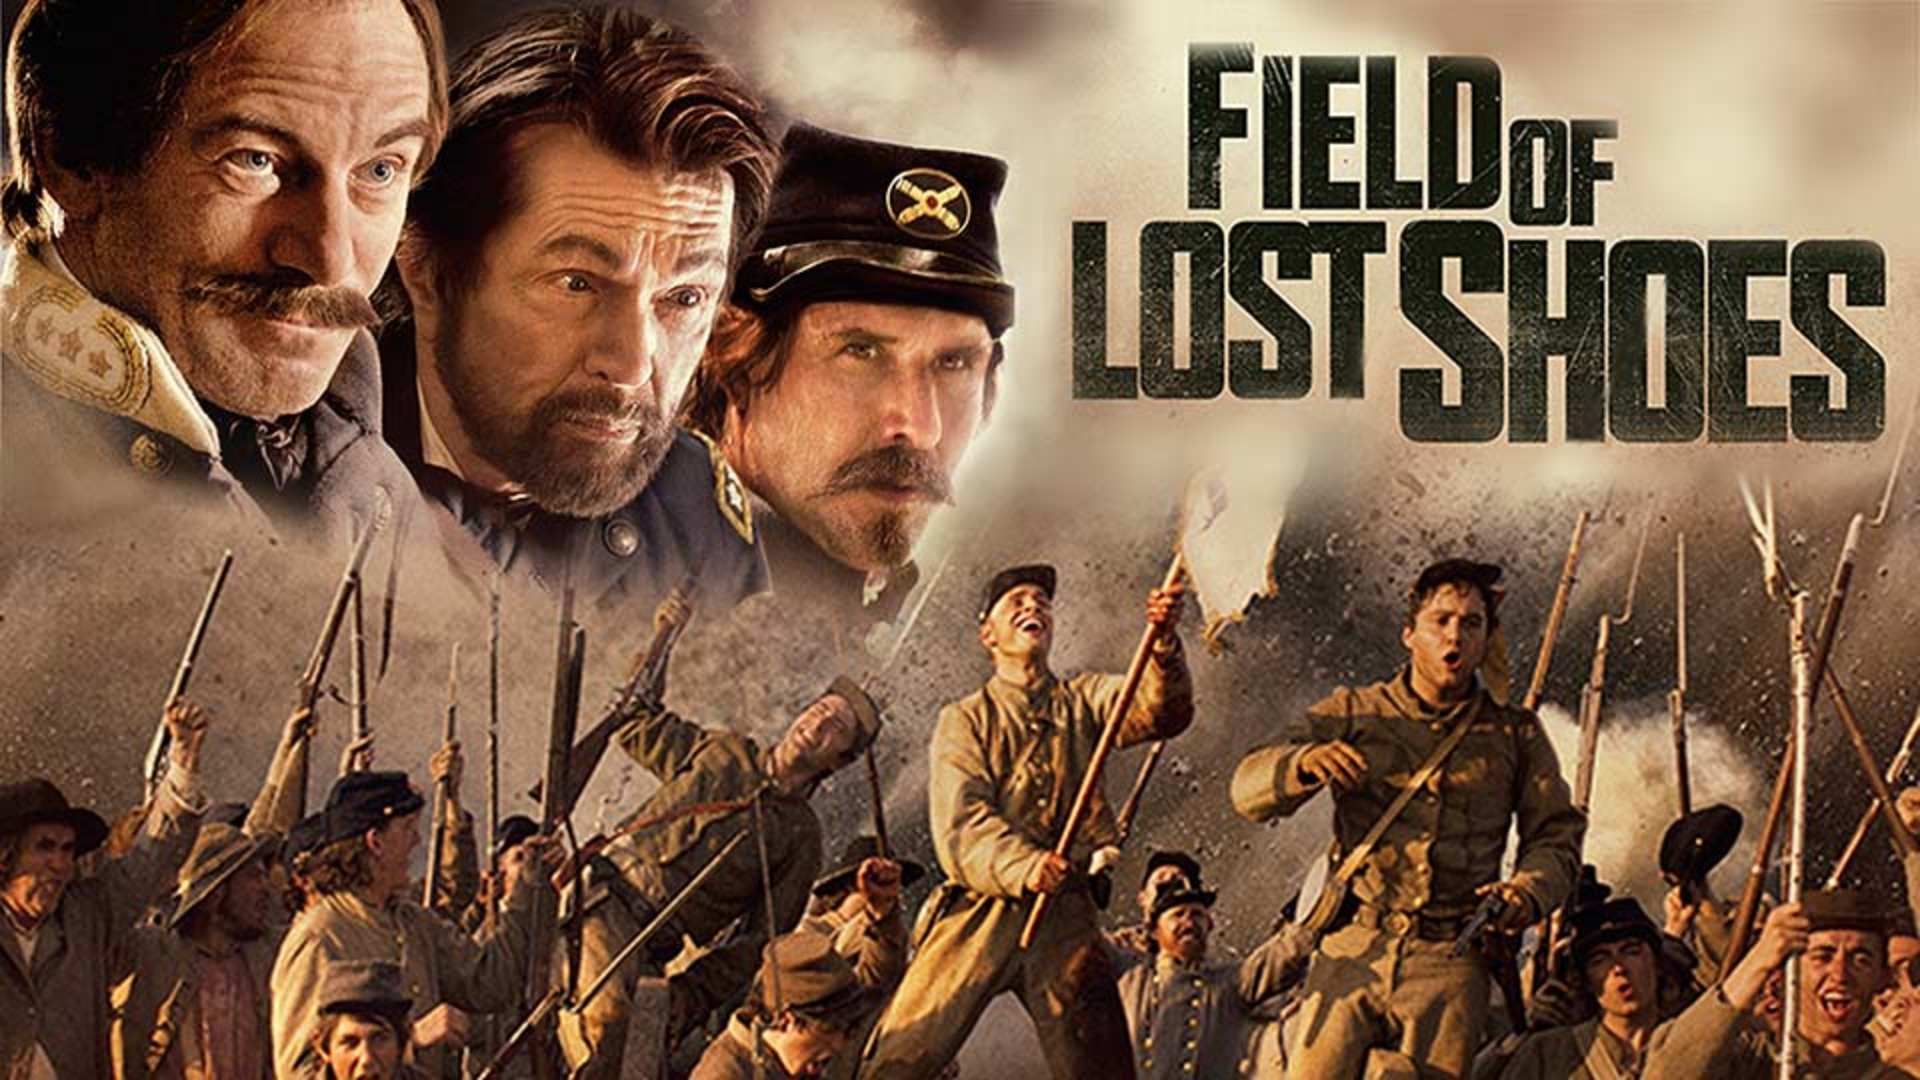 Valorous TV Field of Lost Shoes starring David Arquette and Tom Skeritt